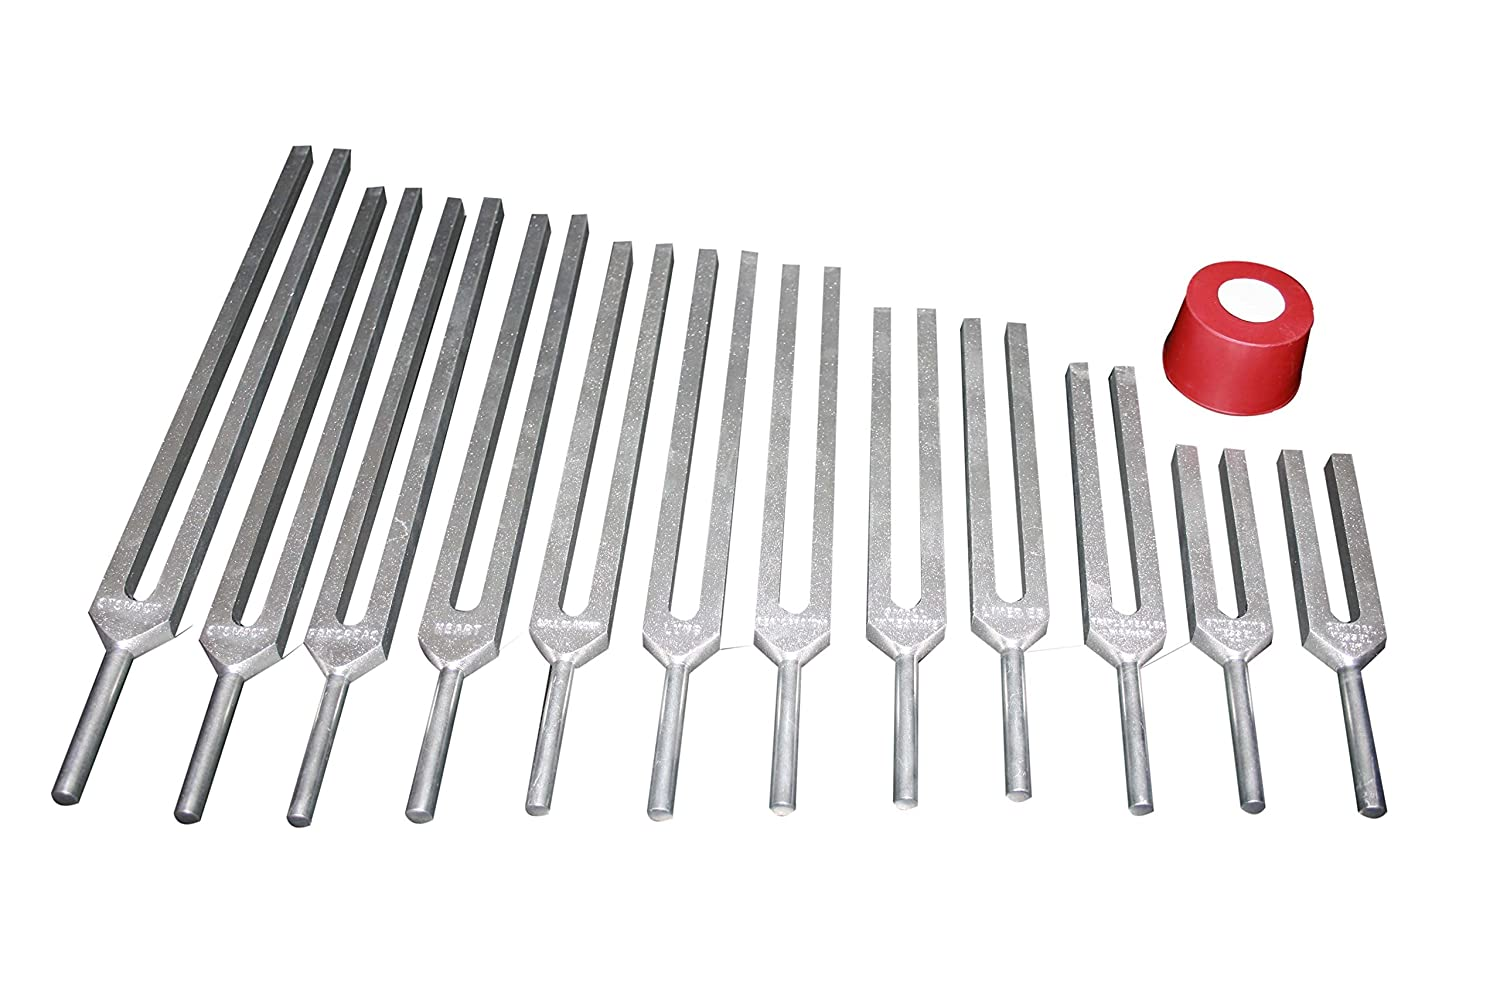 Amazon Com 12pc Kabbalah Tree Of Life Sephiroth Tuning Forks W Activator And Pouch Industrial Scientific Radical 12pc kabbalah tree of life sephiroth tuning forks w activator and pouch. amazon com